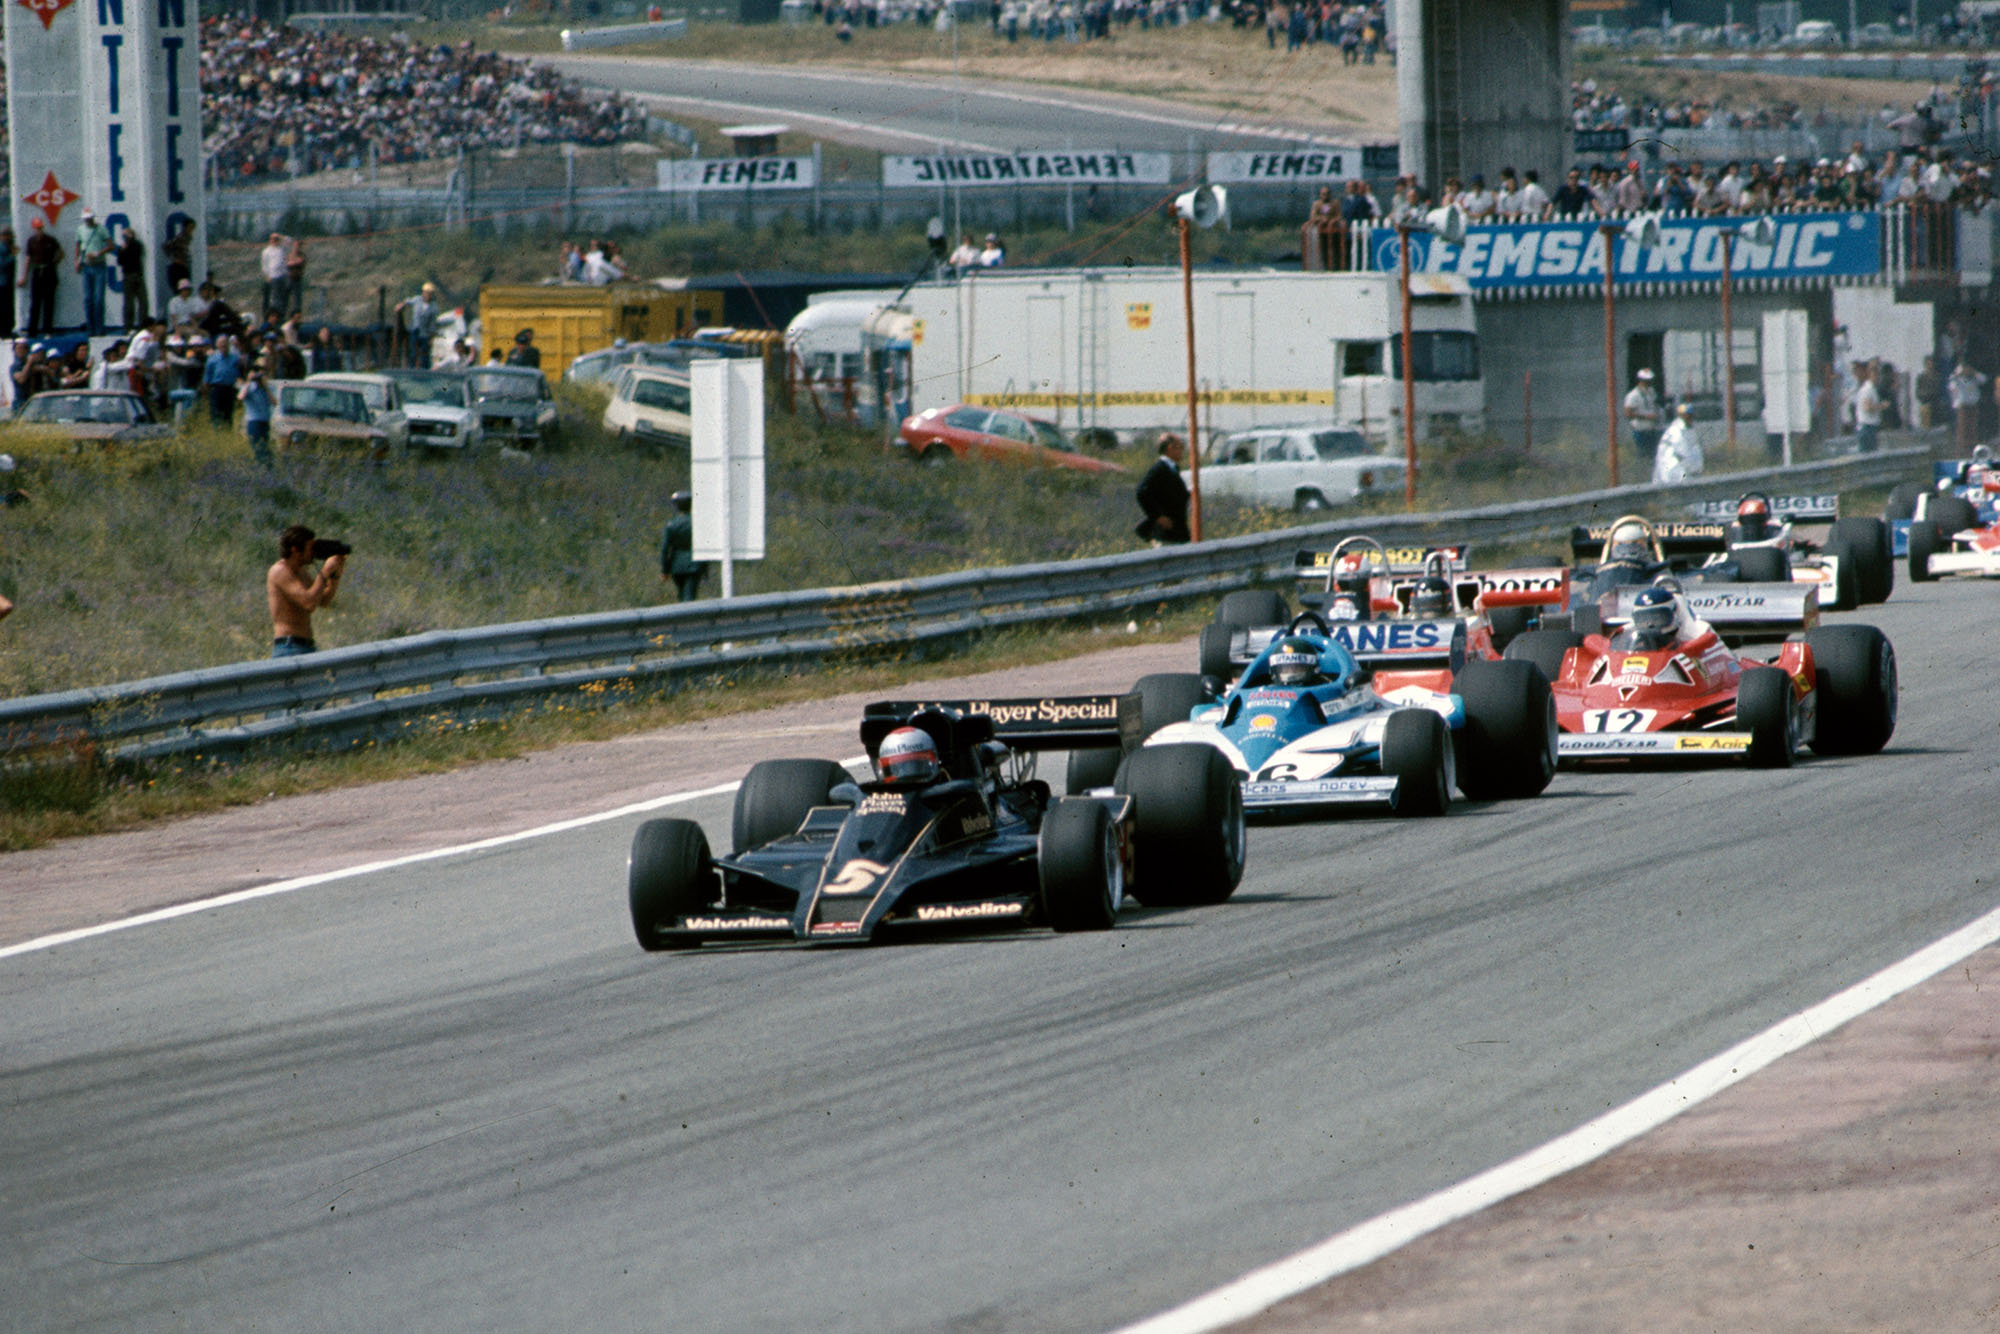 Mario Andretti (Lotus) takes the lead at the start of the 1977 Spanish Grand Prix, Jarama.